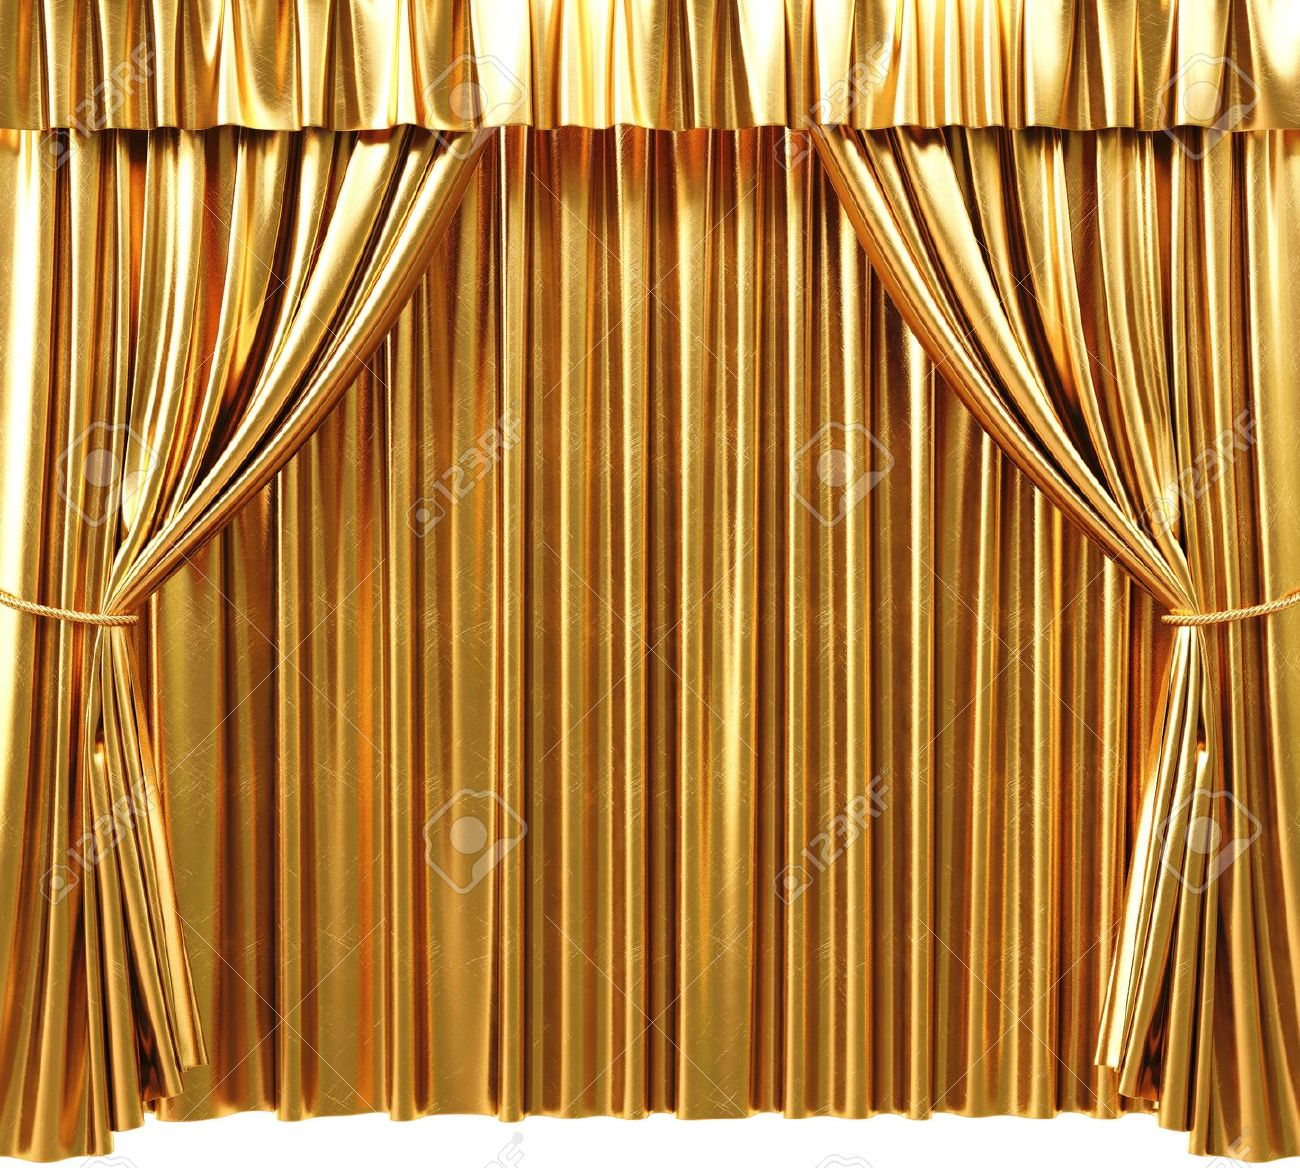 Gold stage curtain - Golden Theatrical Curtain 3d Image Stock Photo 15362504